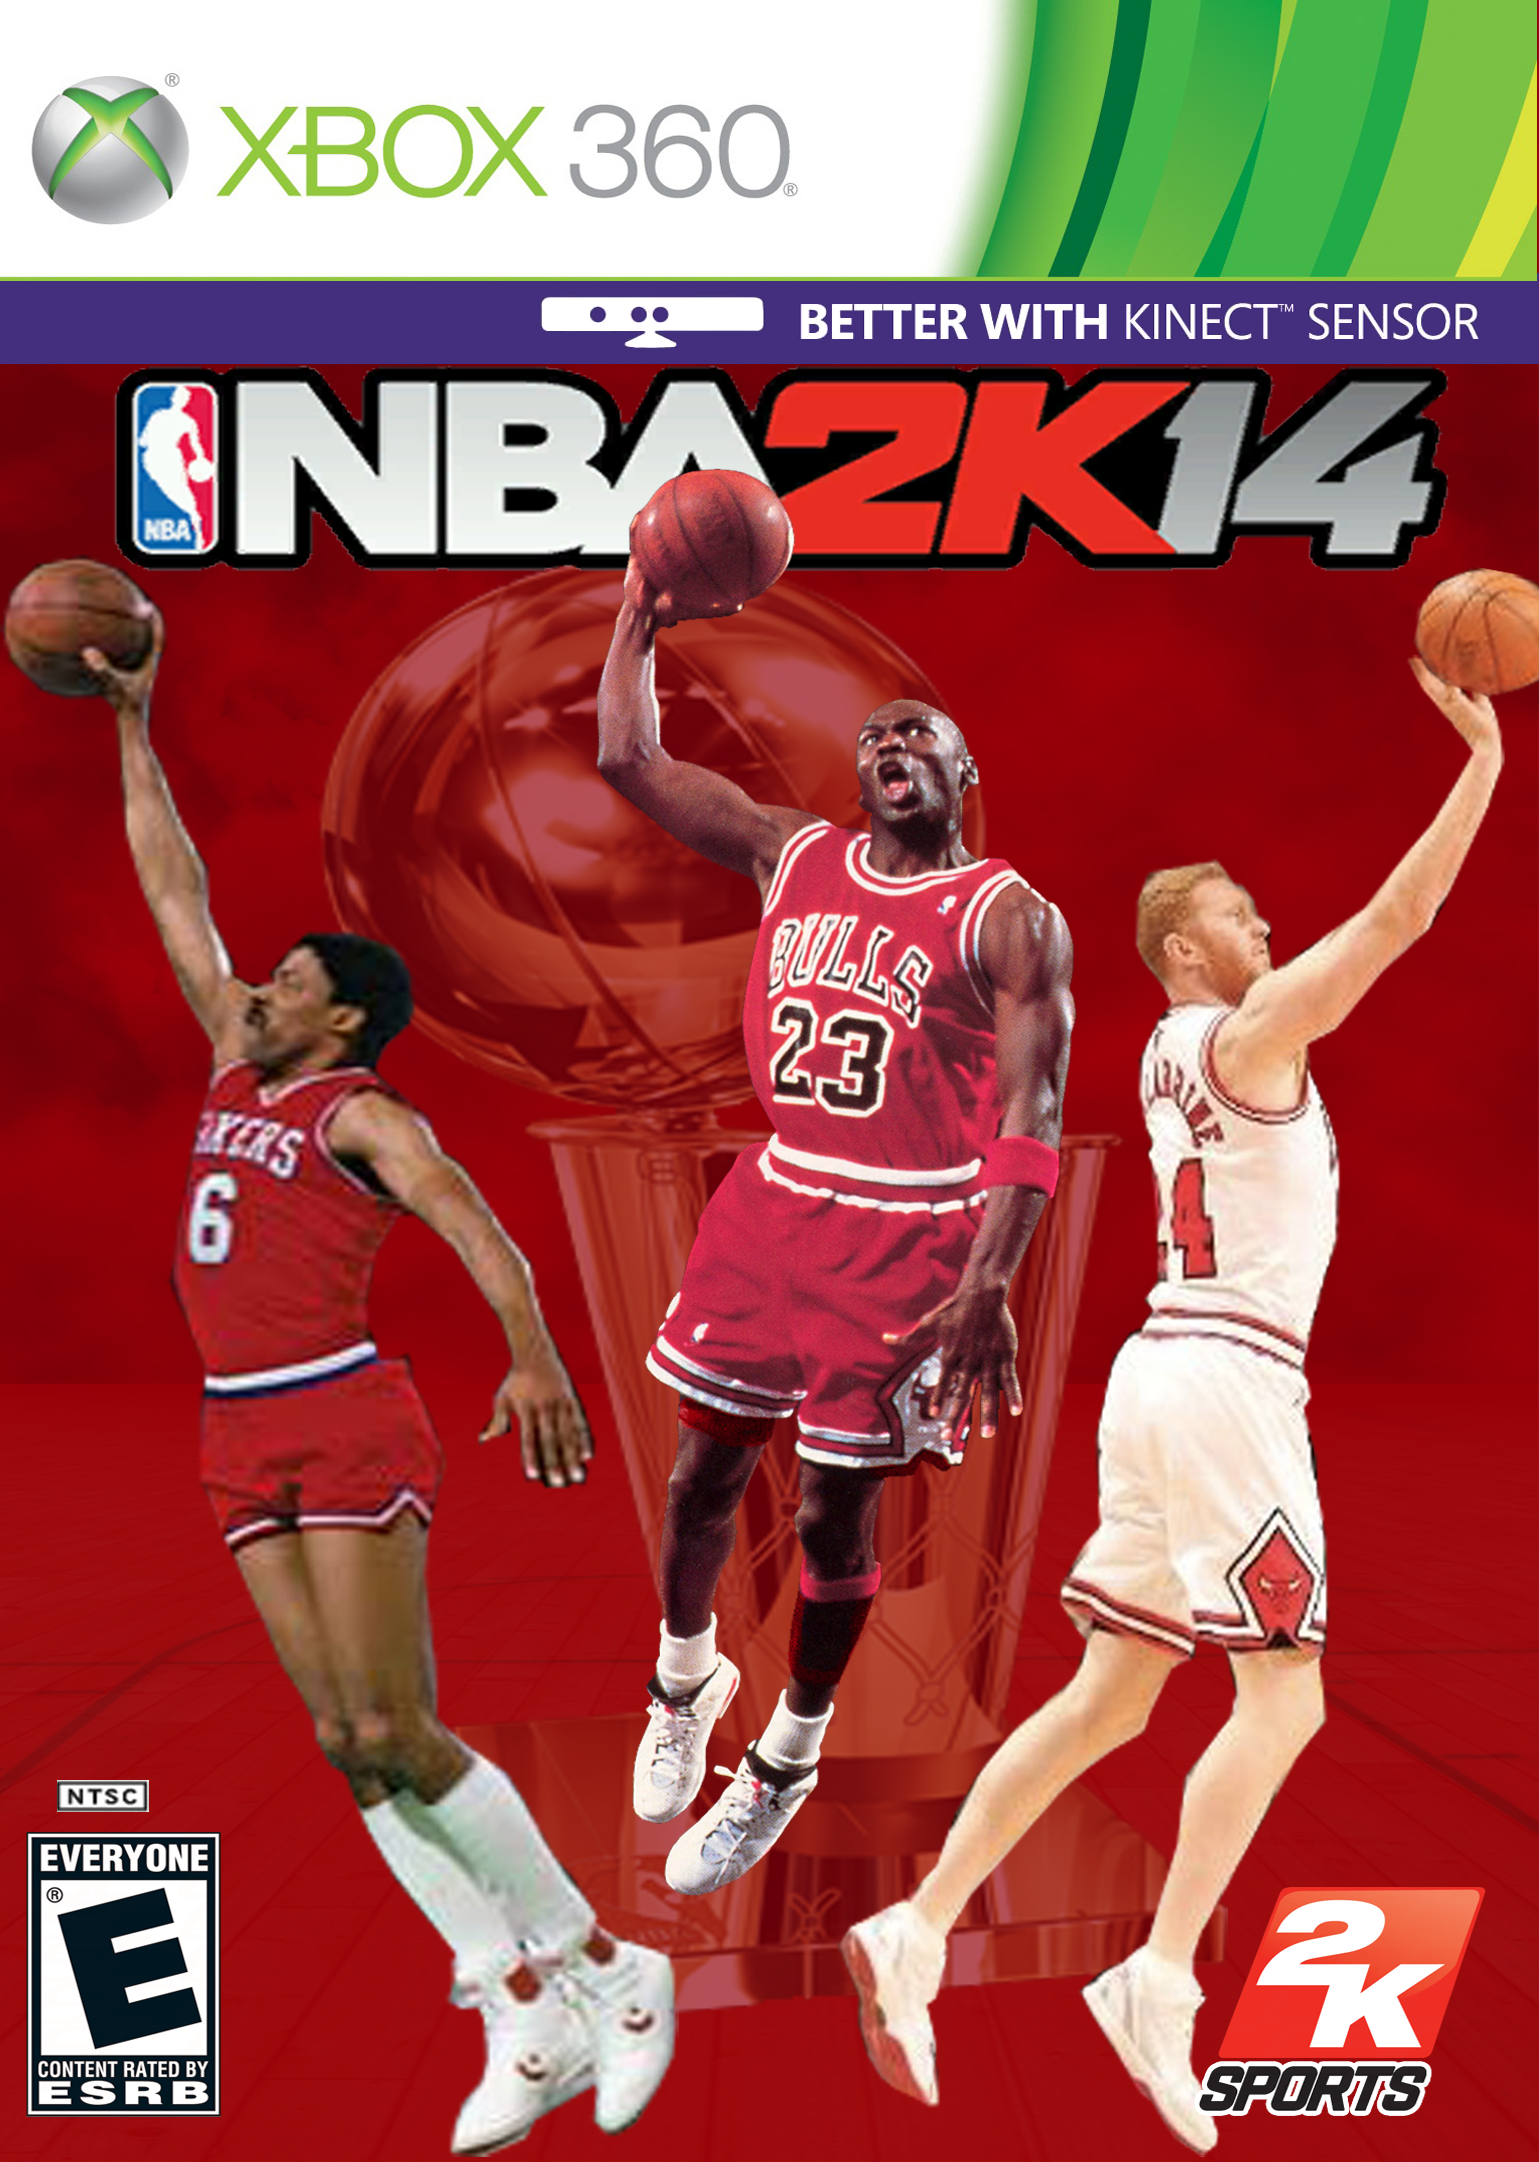 NBA 2K14 Covers - Page 31 - Operation Sports Forums